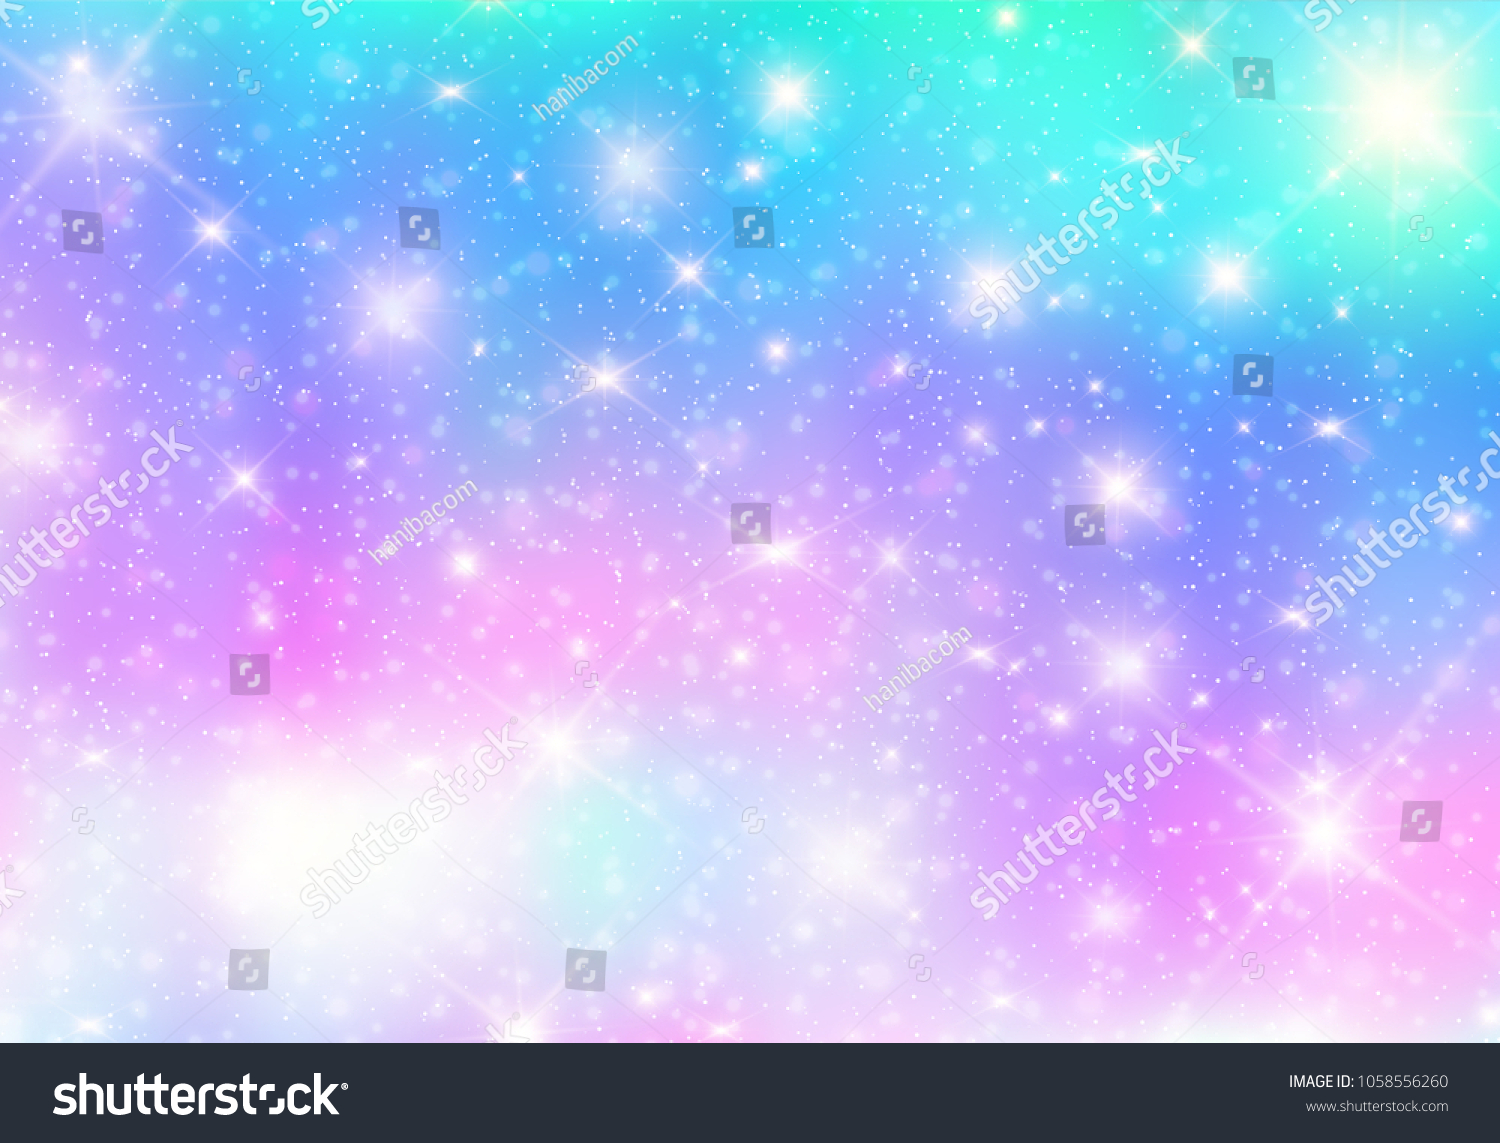 stock vector illustration of galaxy fantasy background and pastel color the unicorn in pastel sky with rainbow 1058556260